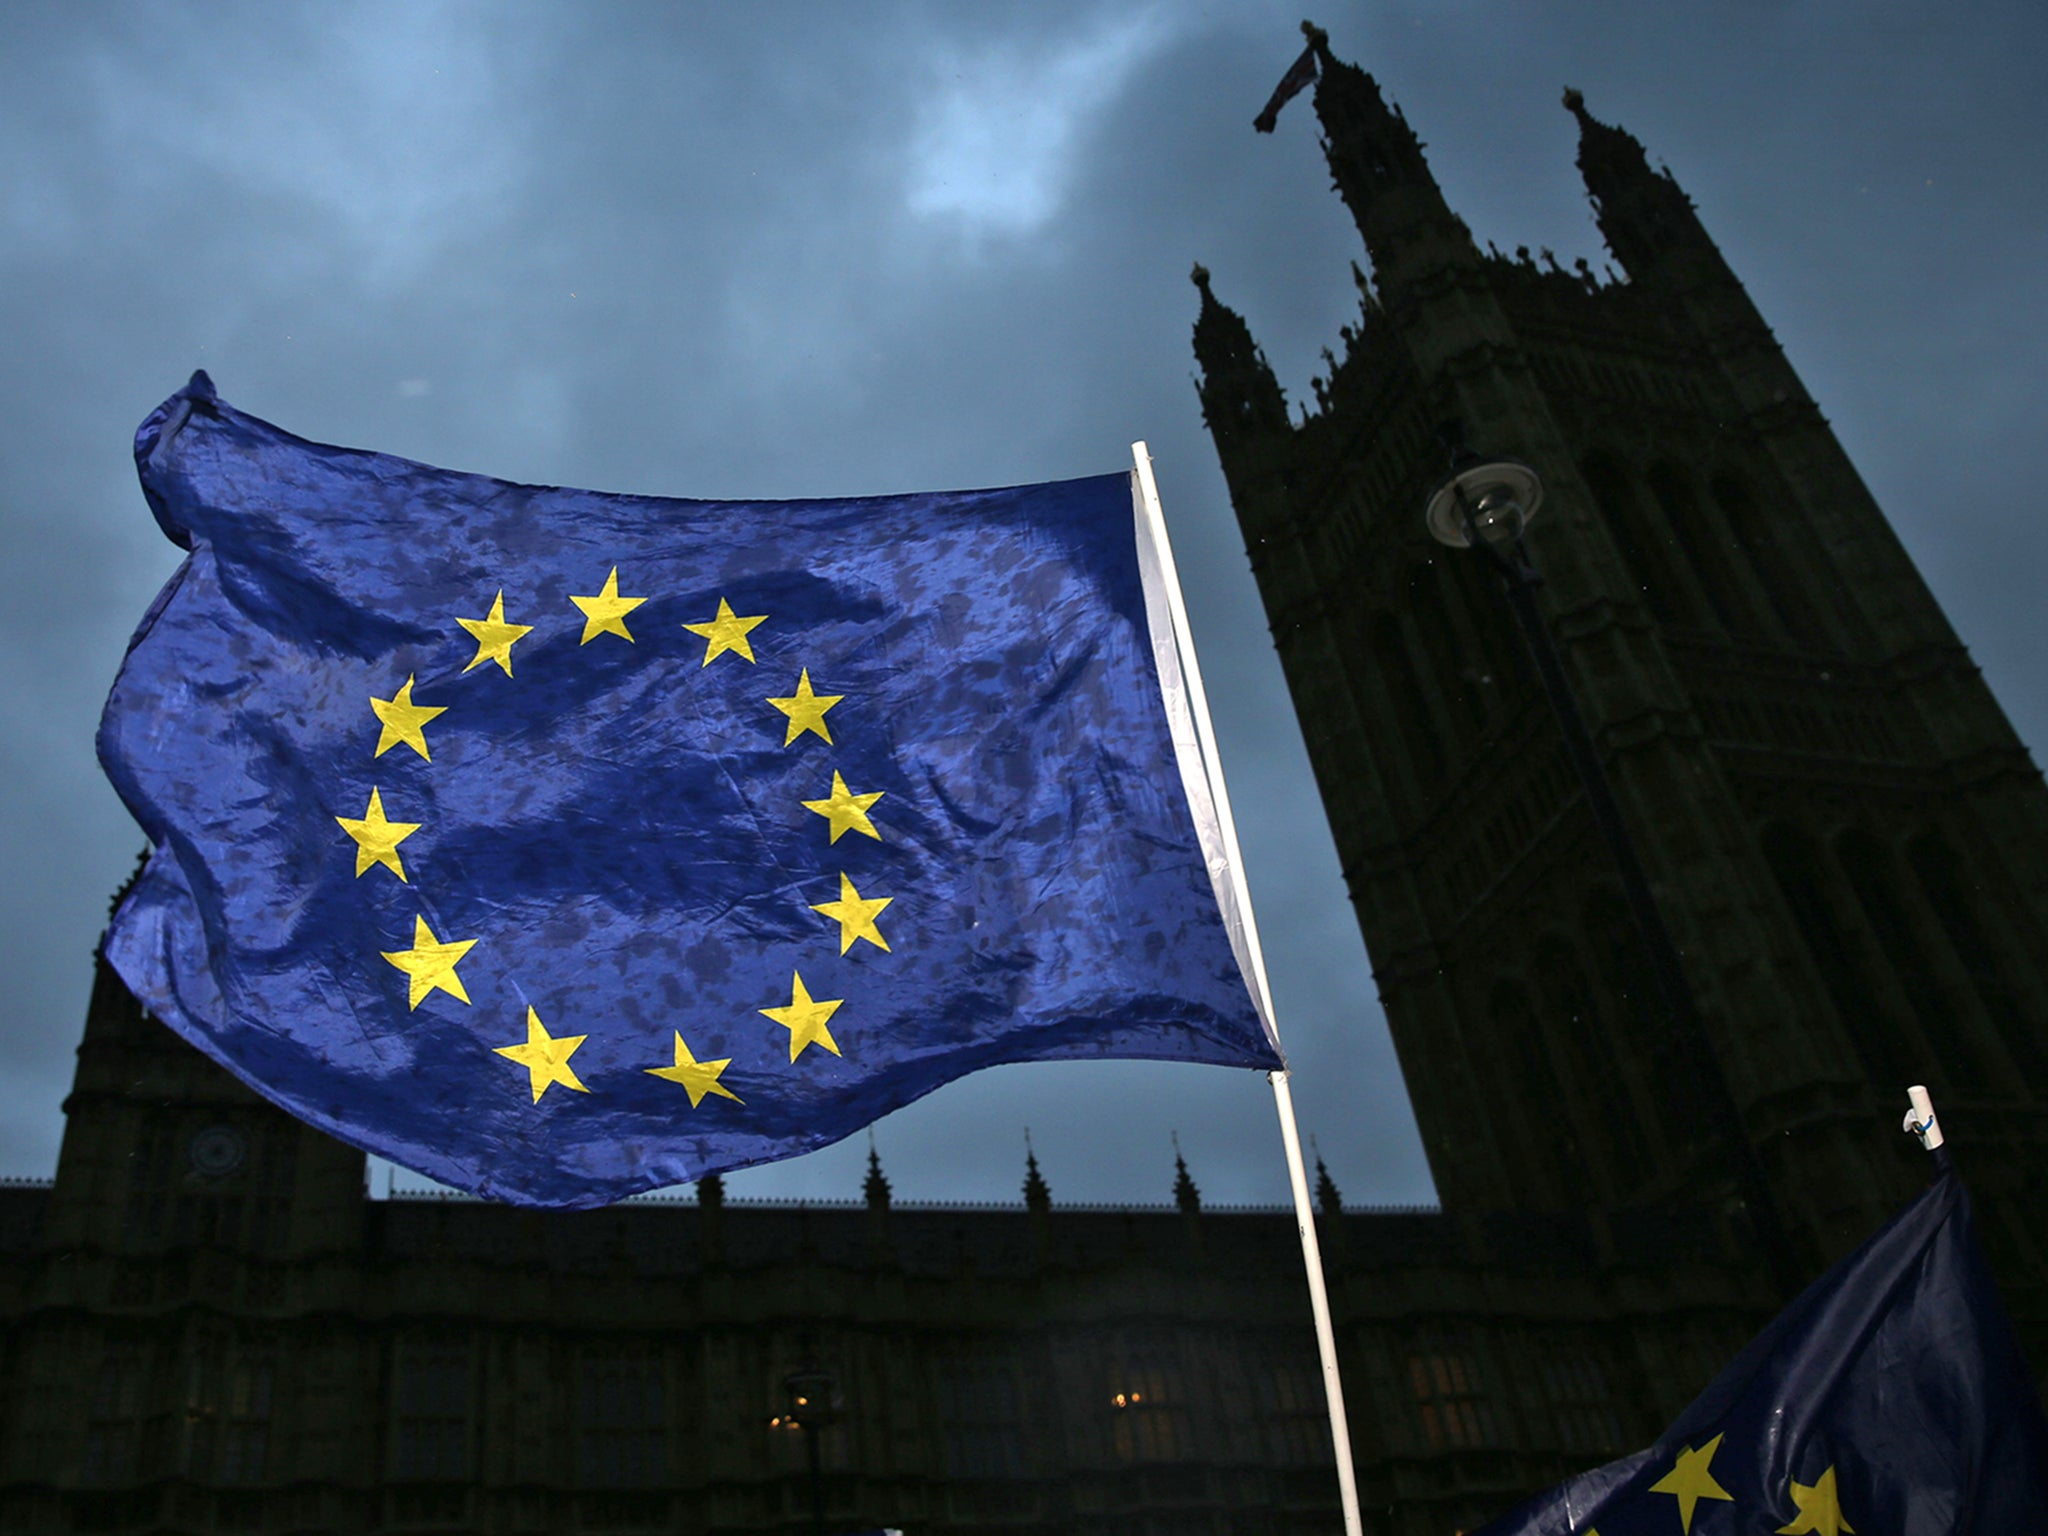 Brexit: Nearly 20 banks have committed to Frankfurt since vote to leave EU, German officials say